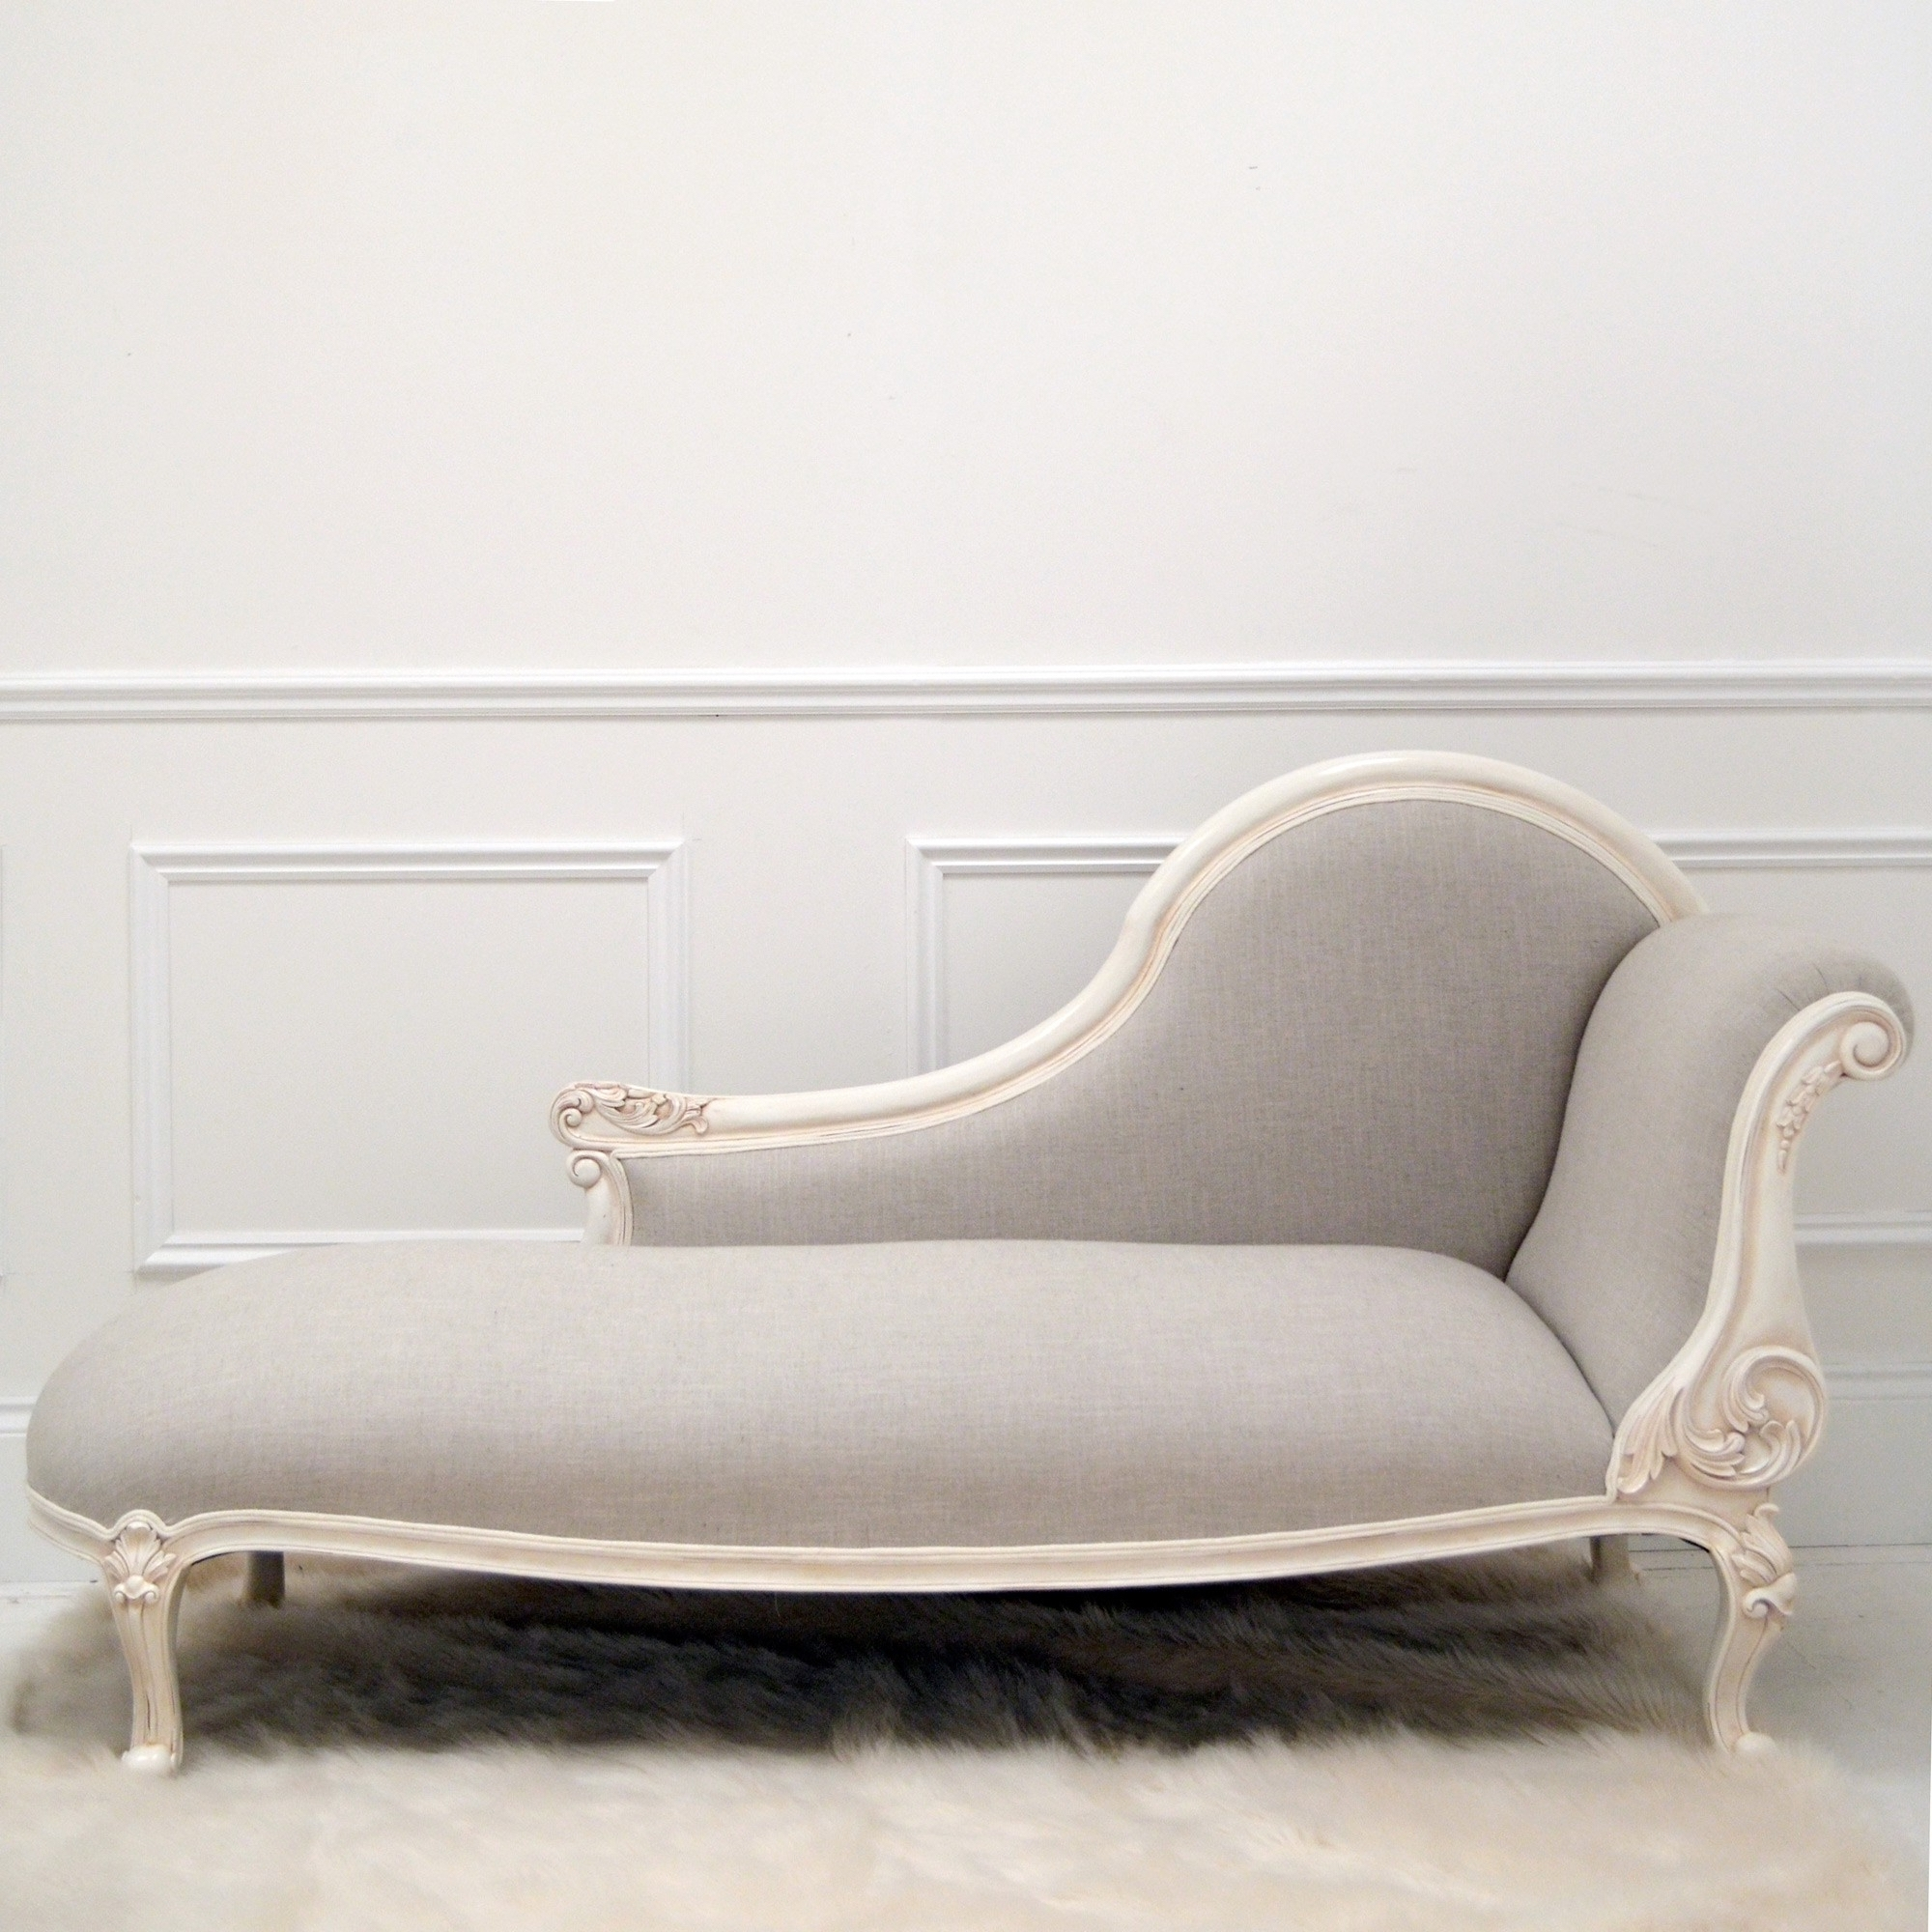 Teenage Chaise Lounges Intended For 2017 Bedroom Chaise Lounge Chairs Wayfair Ikea 2017 With For Teens (View 4 of 15)